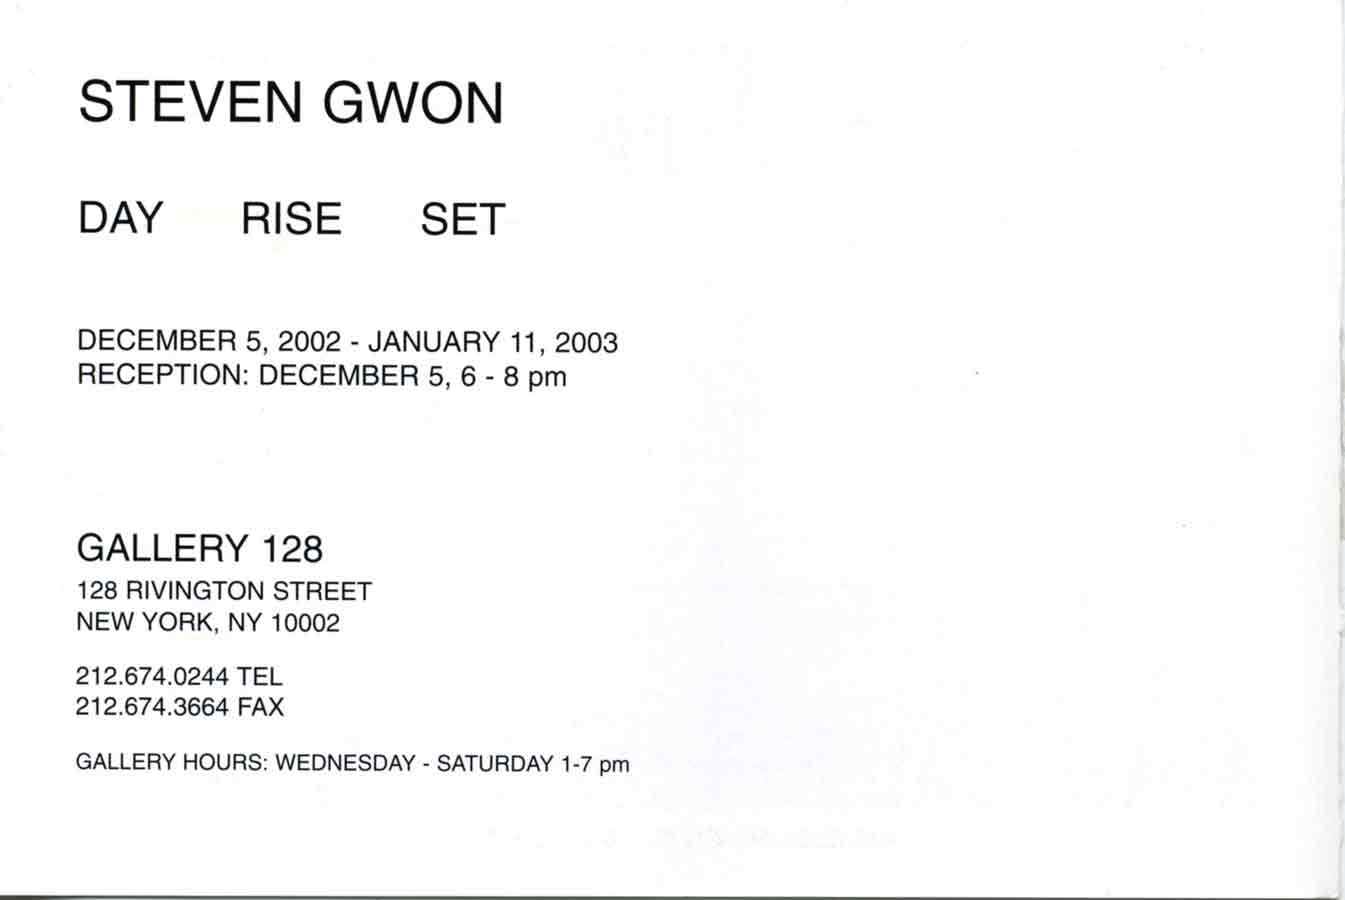 Steven Gwon: Day Rise Set, flyer, pg 1